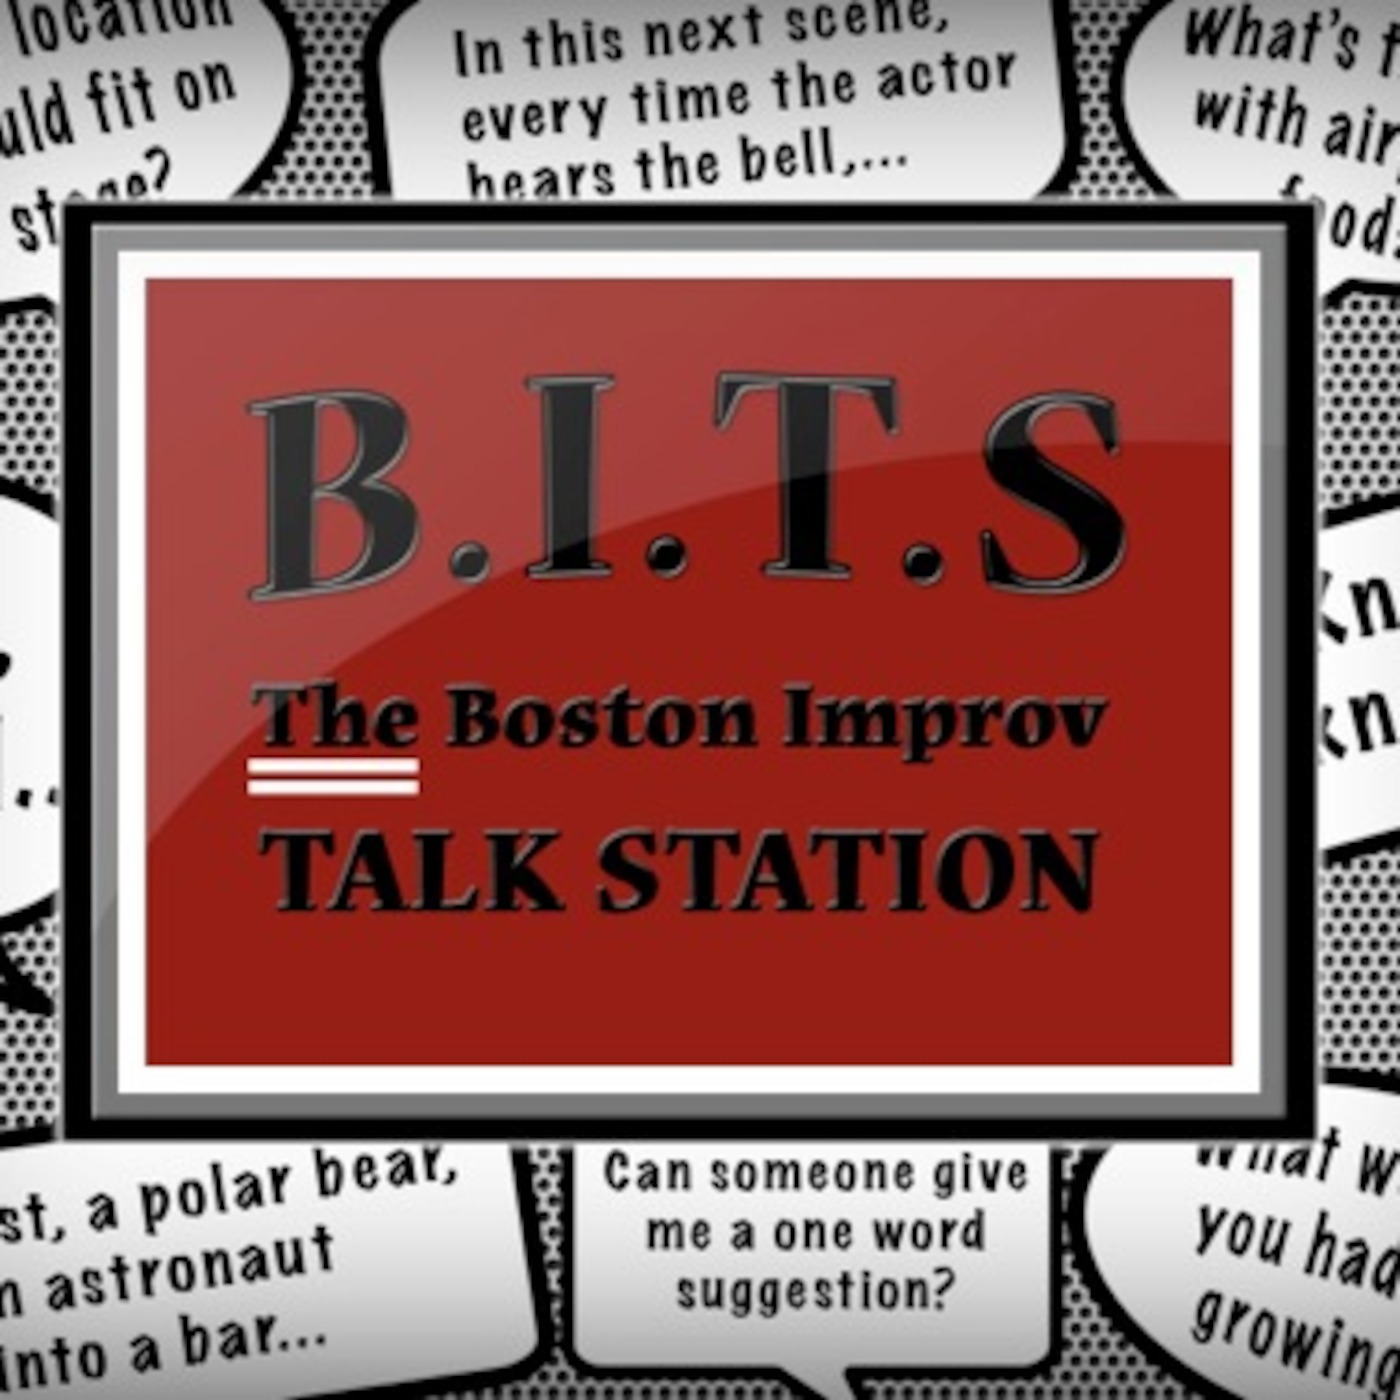 B.I.T.S, The Boston Improv Talk Station